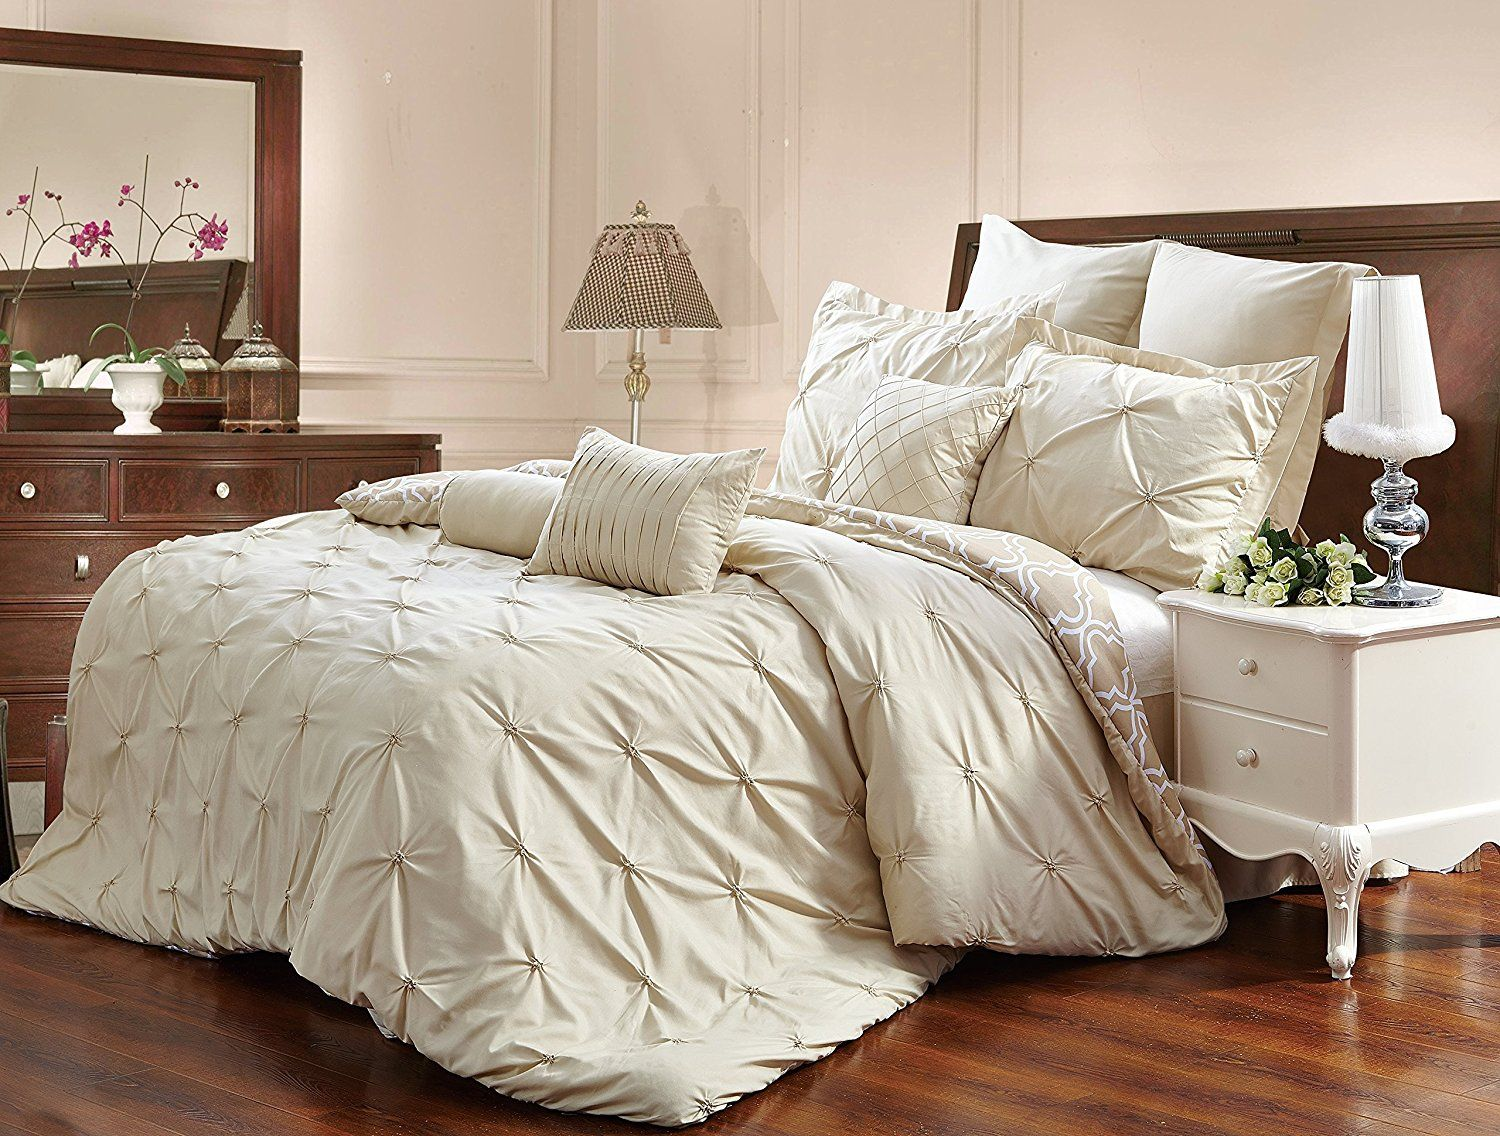 pinch pinched lined home queen product set pintuck josepha piece comforter and chic pleated ruffled sherpa grey pleat